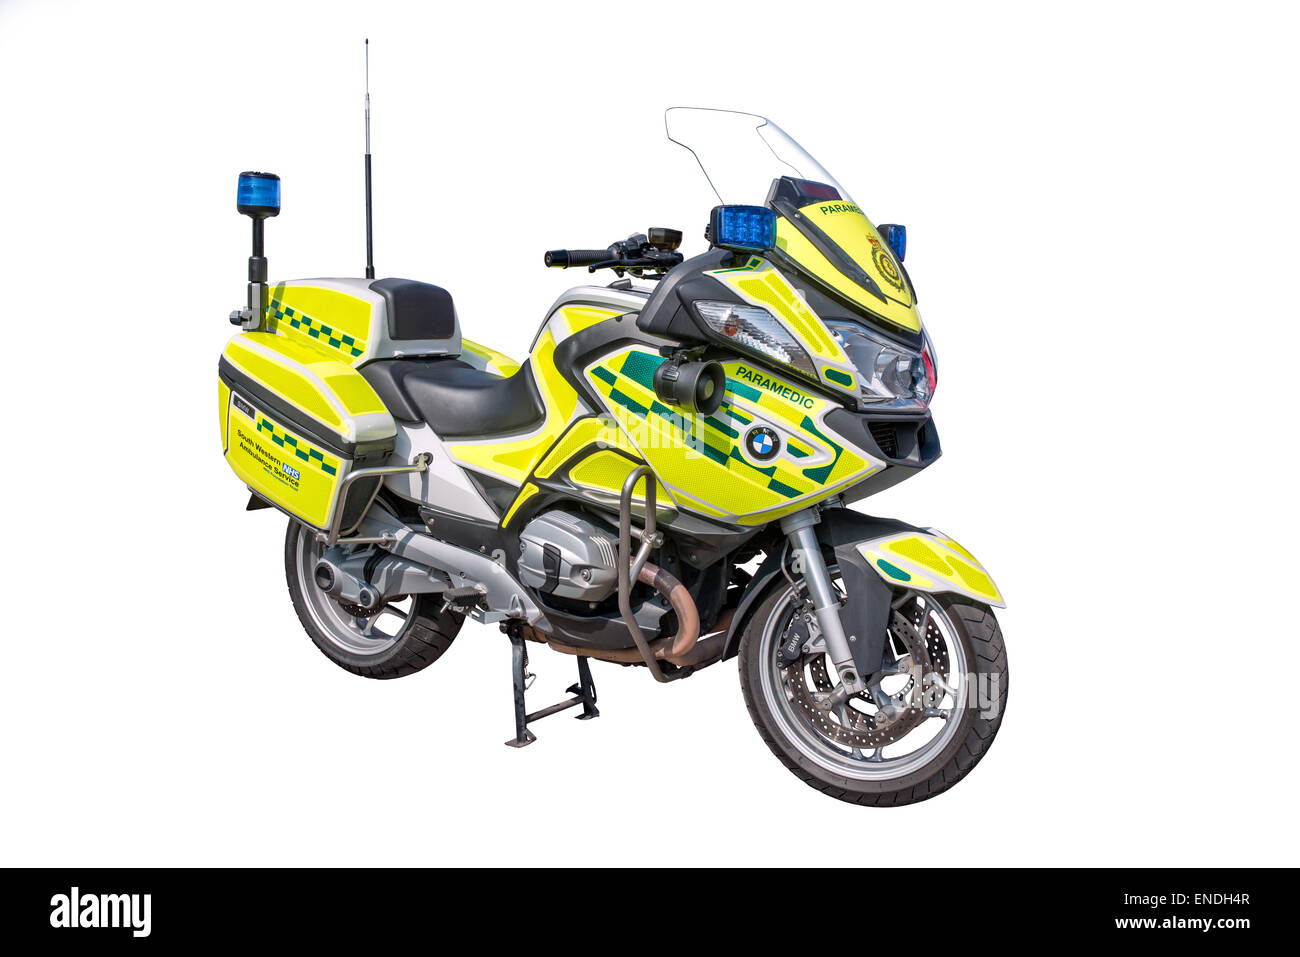 A cut out of a Wiltshire NHS trust paramedic BMW motorcycle Response Unit - Stock Image